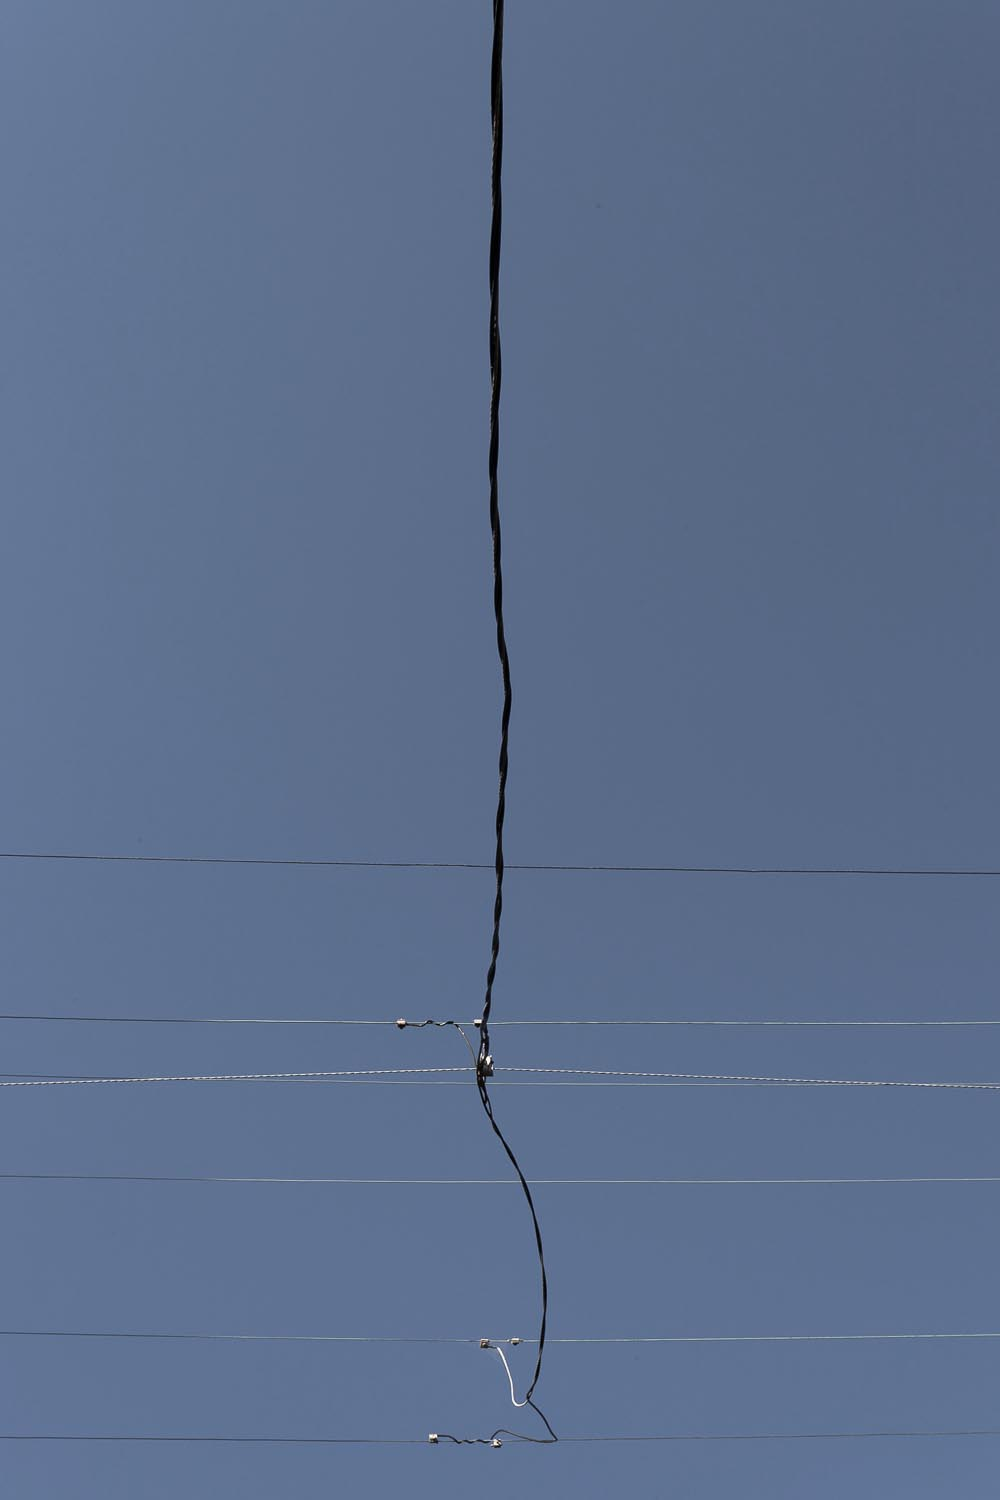 018_Powerlines_II_0023.jpg